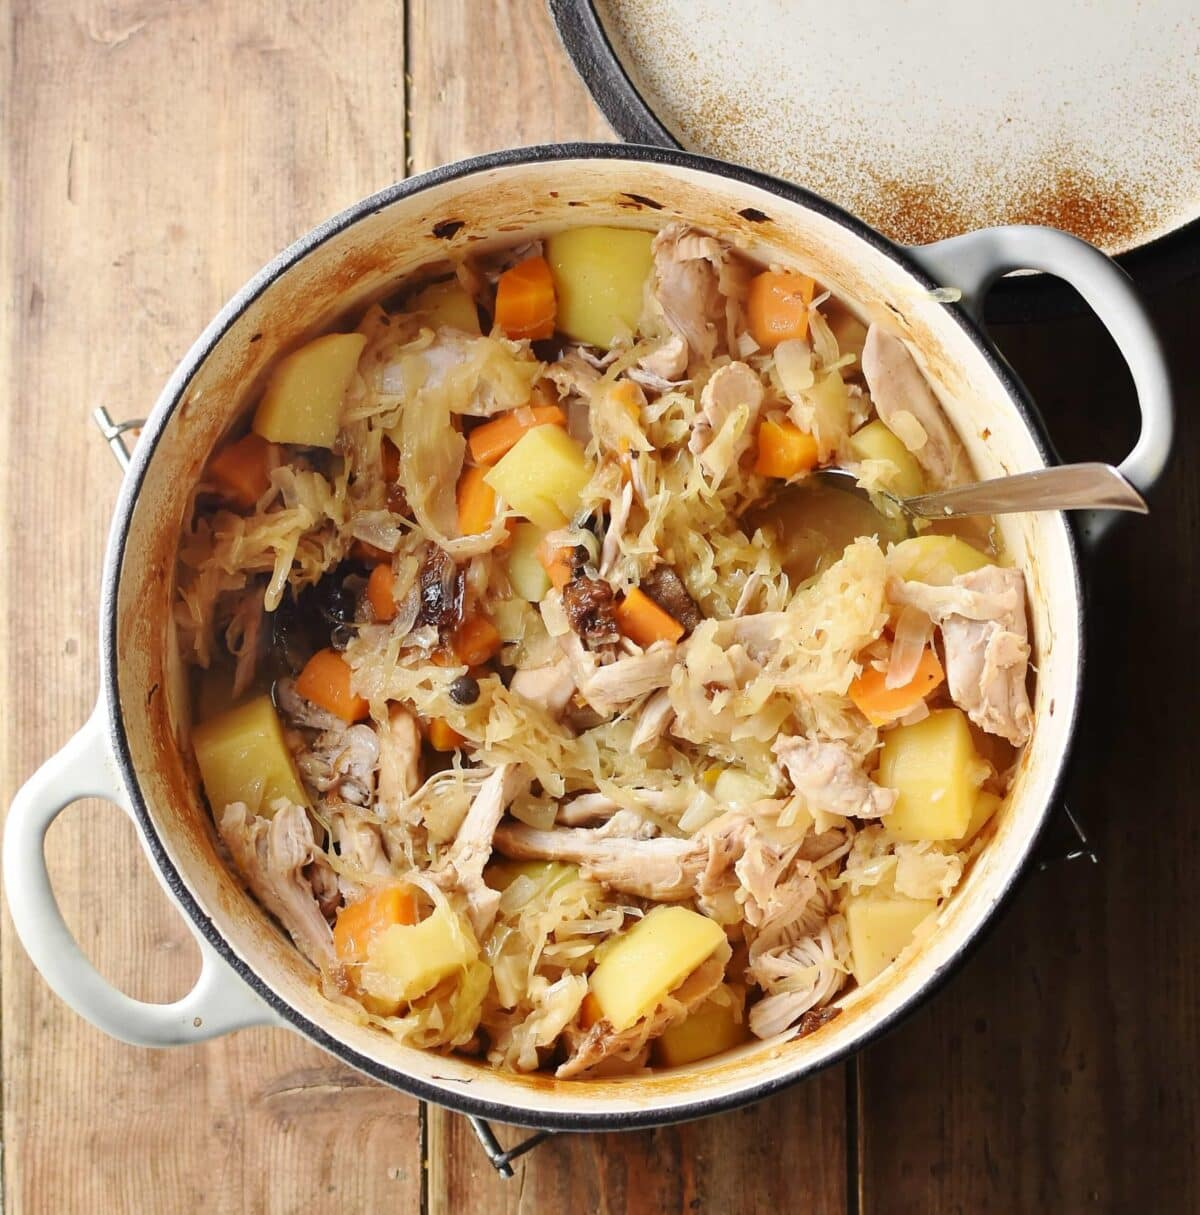 Potatoes, carrots, chicken pieces and sauerkraut in large white pot with spoon and lid in top right.